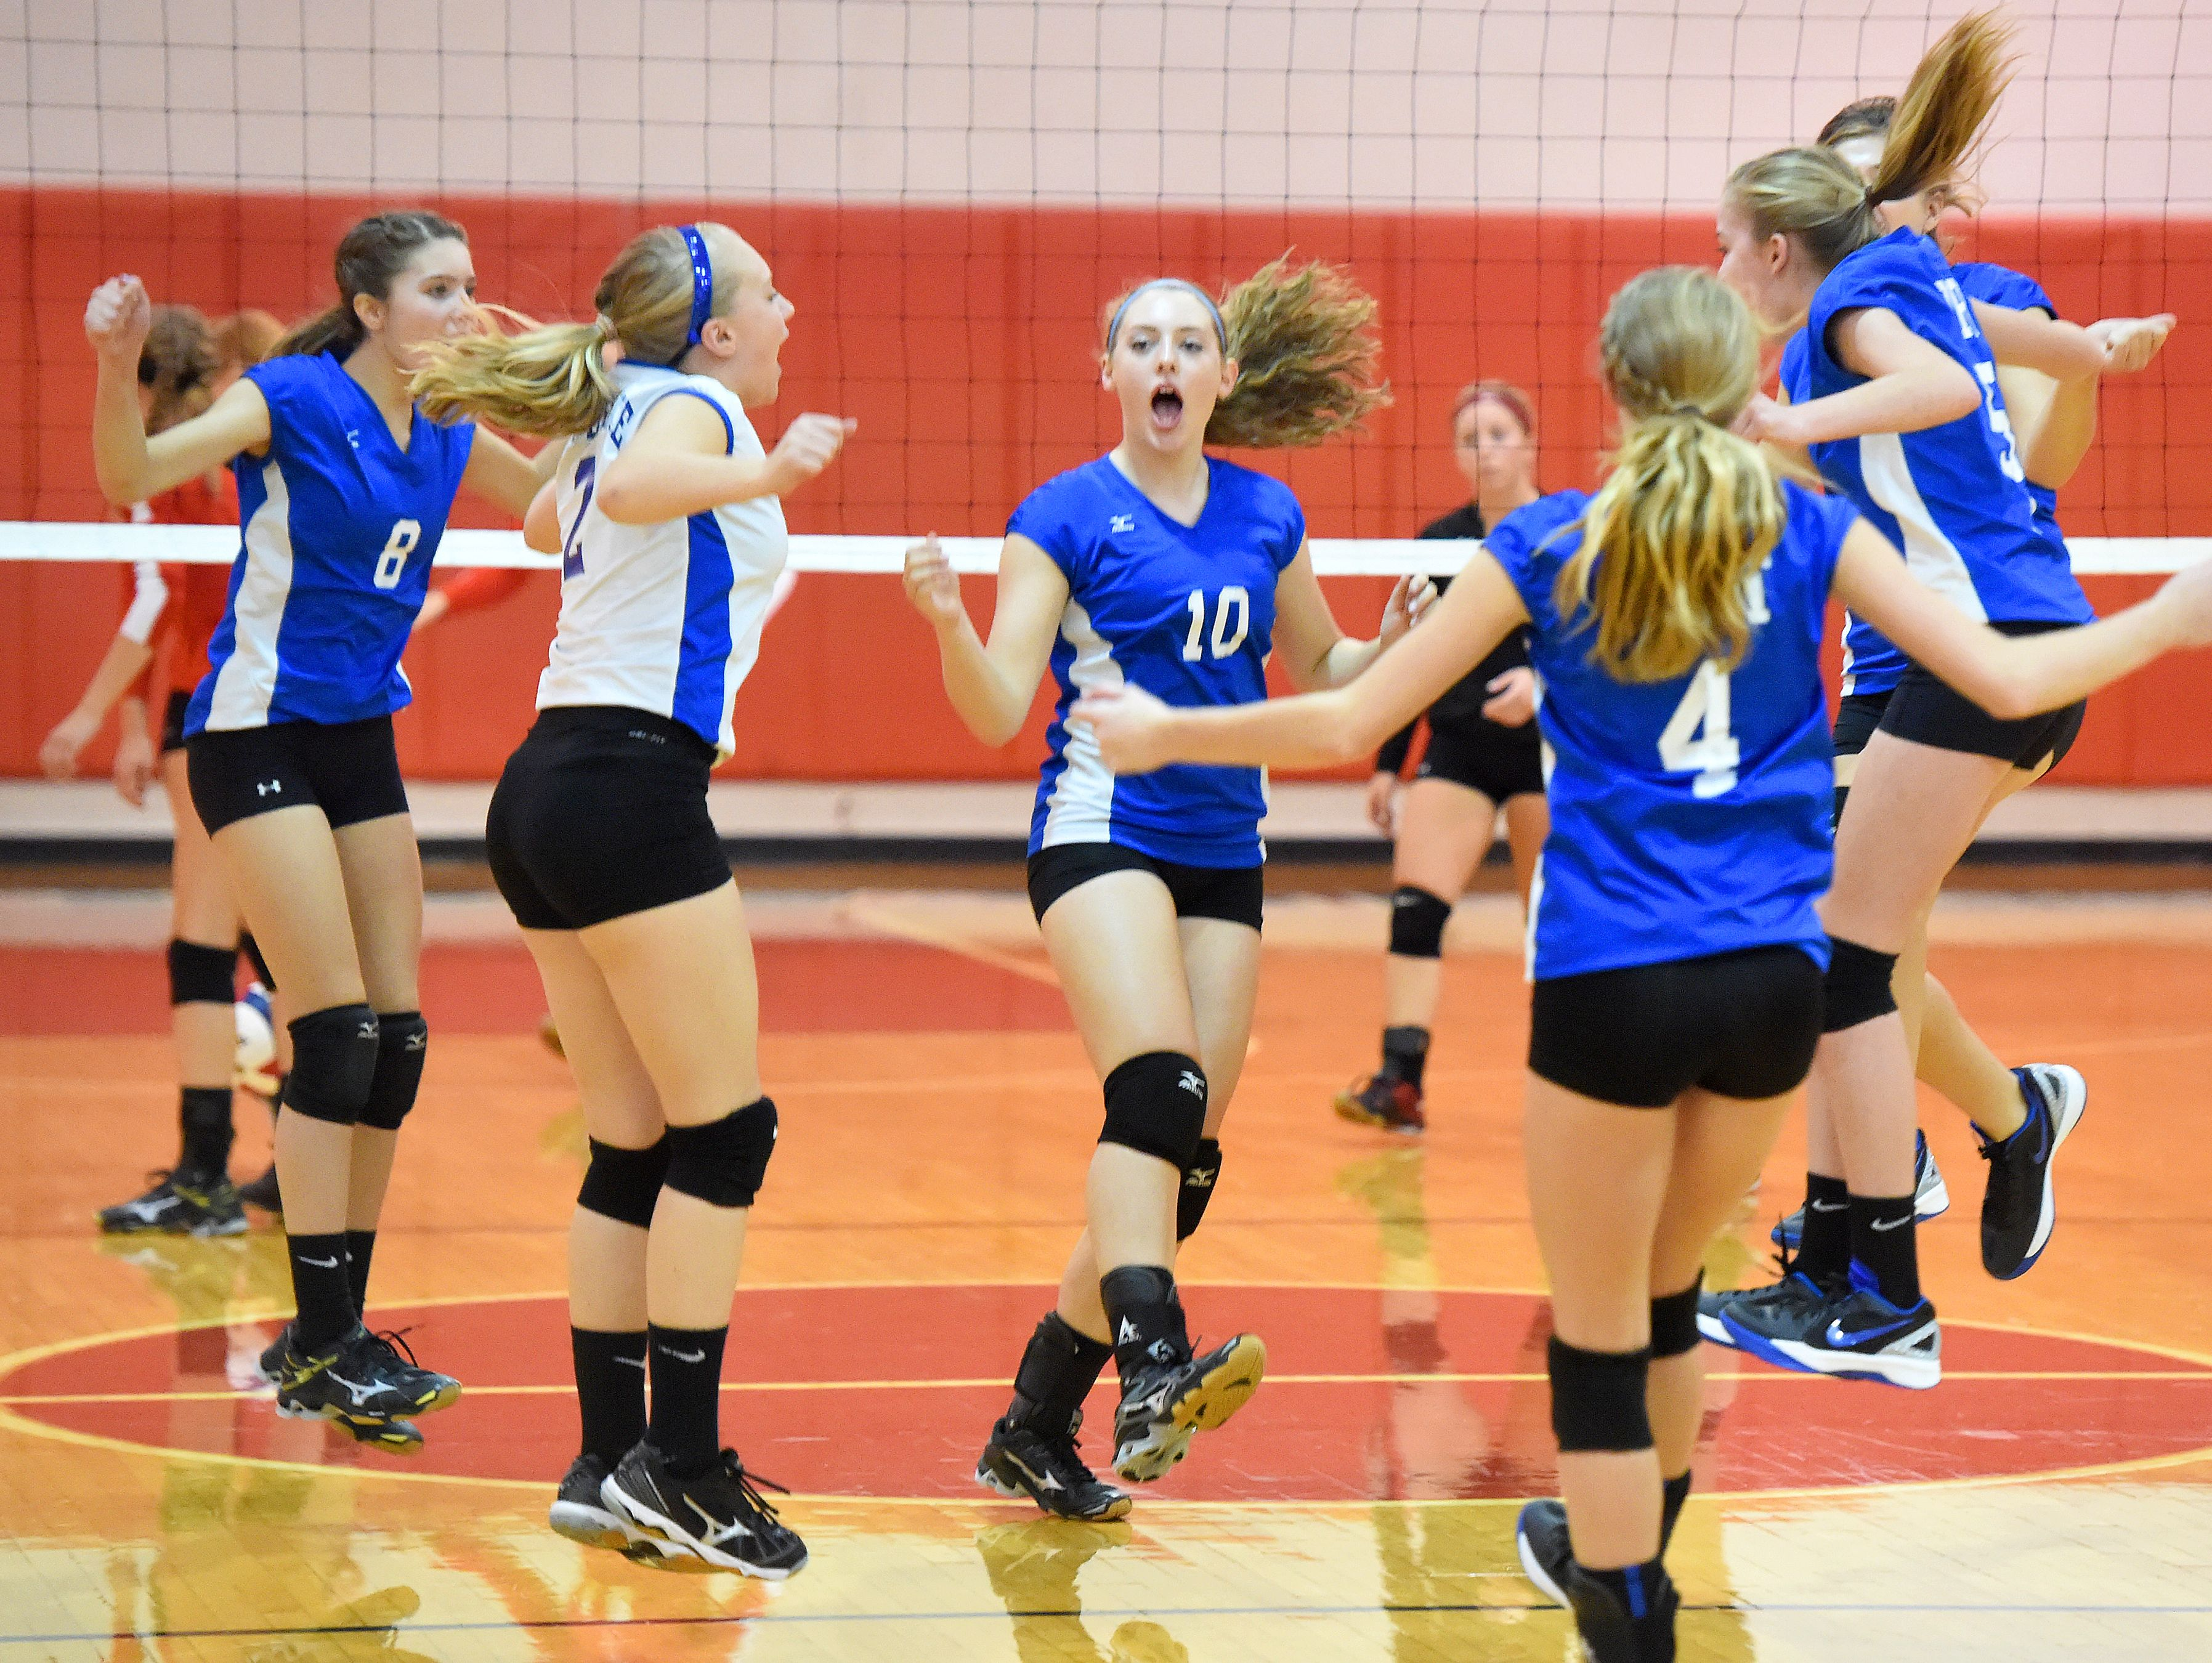 Fort Defiance's Catie Cramer (center) celebrates a point with her team on the court during a volleyball match played in Greenville on Thursday, Sept. 9, 2016.